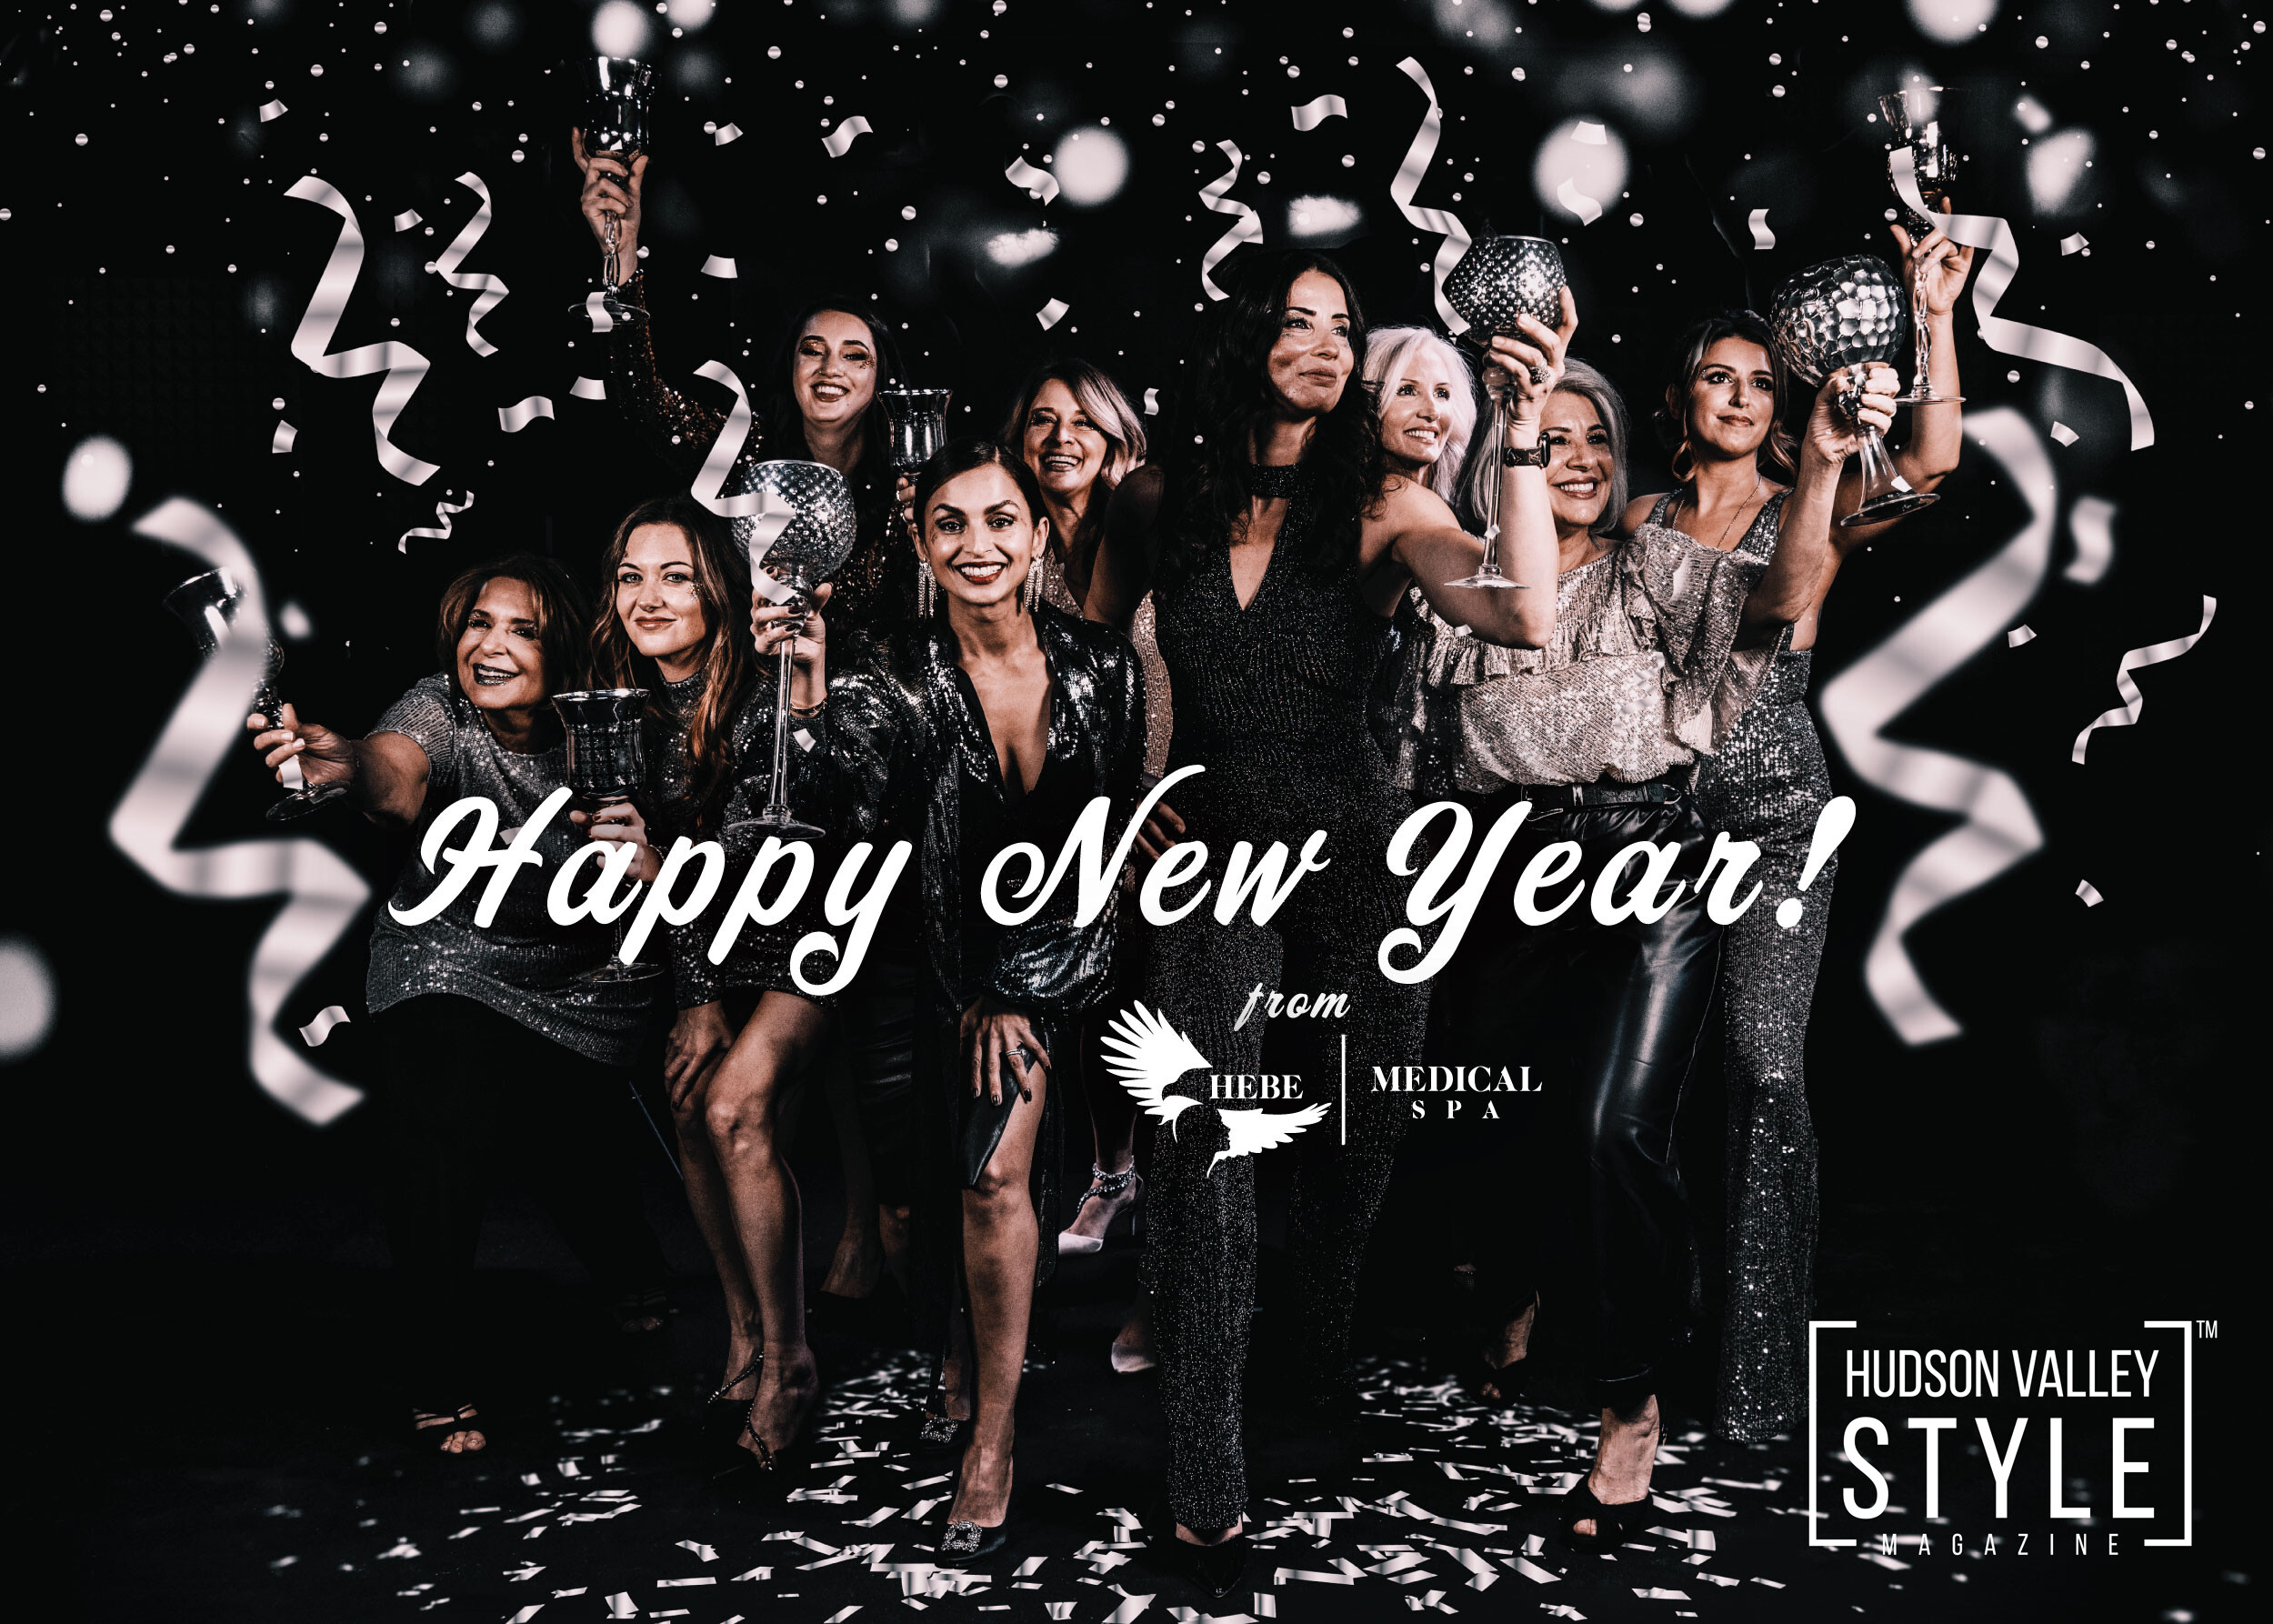 Happy New Year from Hebe Medical Spa - Photography by Maxwell Alexander, Duncan Avenue Studios